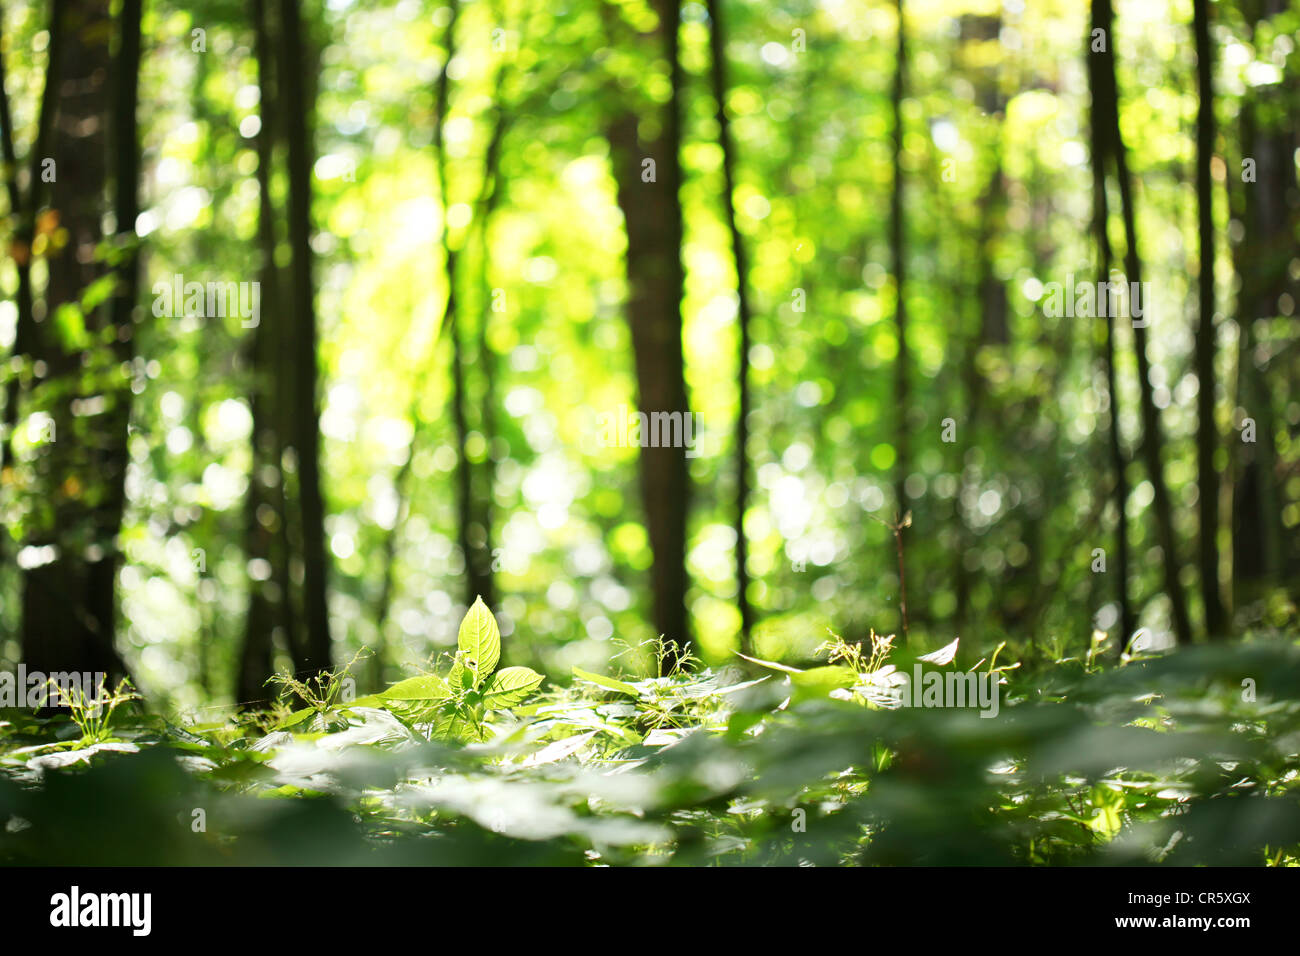 Blur Background Forest High Resolution Stock Photography And Images Alamy